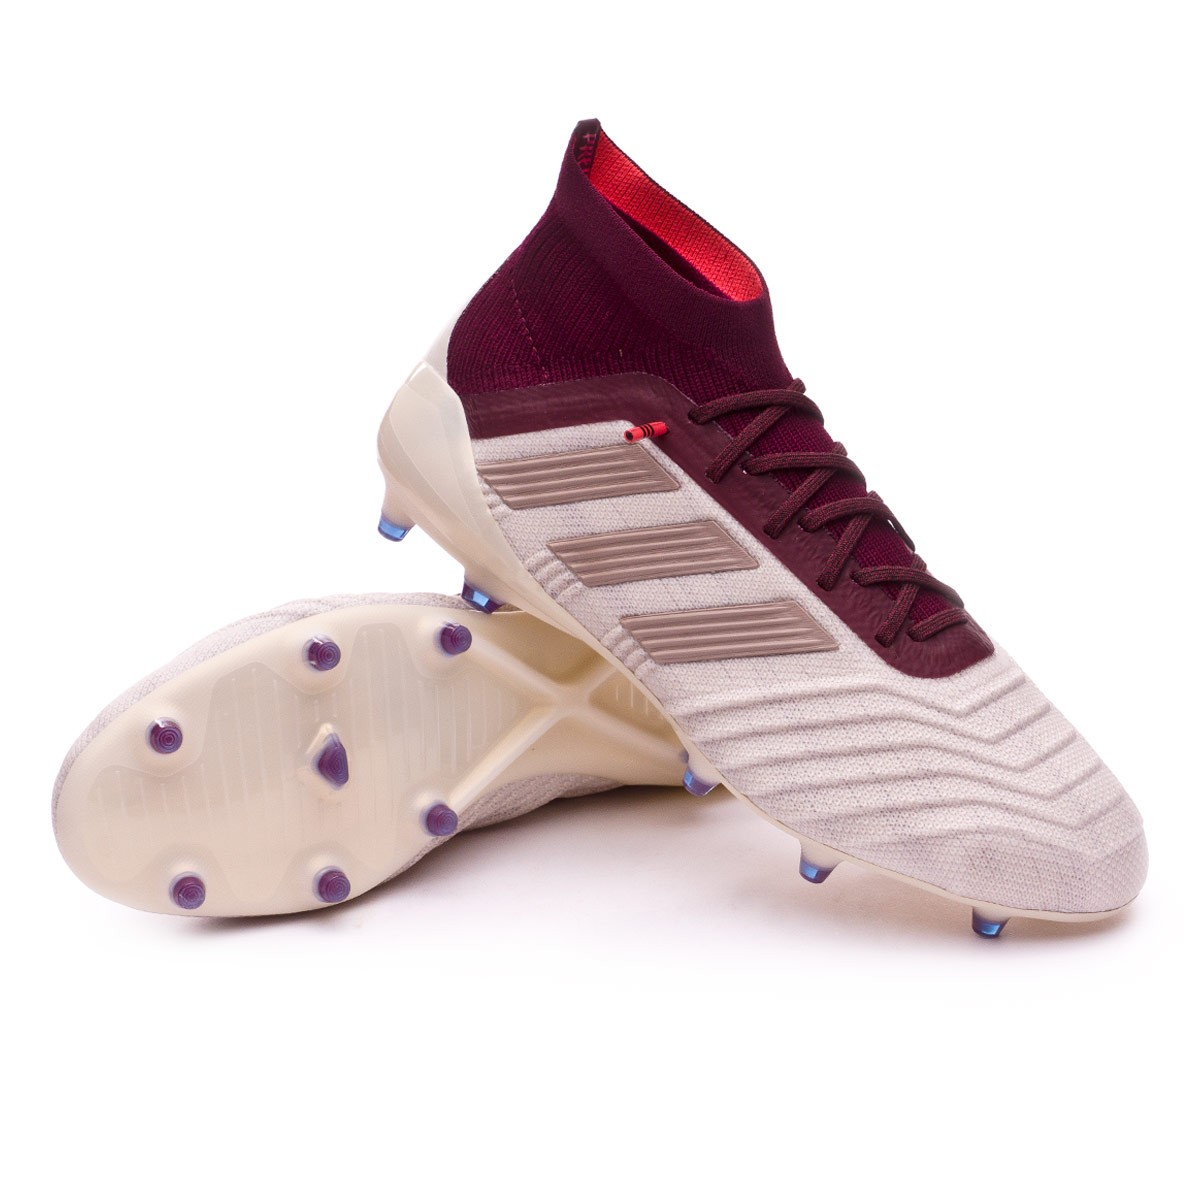 huge discount f765d eb8c4 adidas Woman Predator 18.1 FG Boot